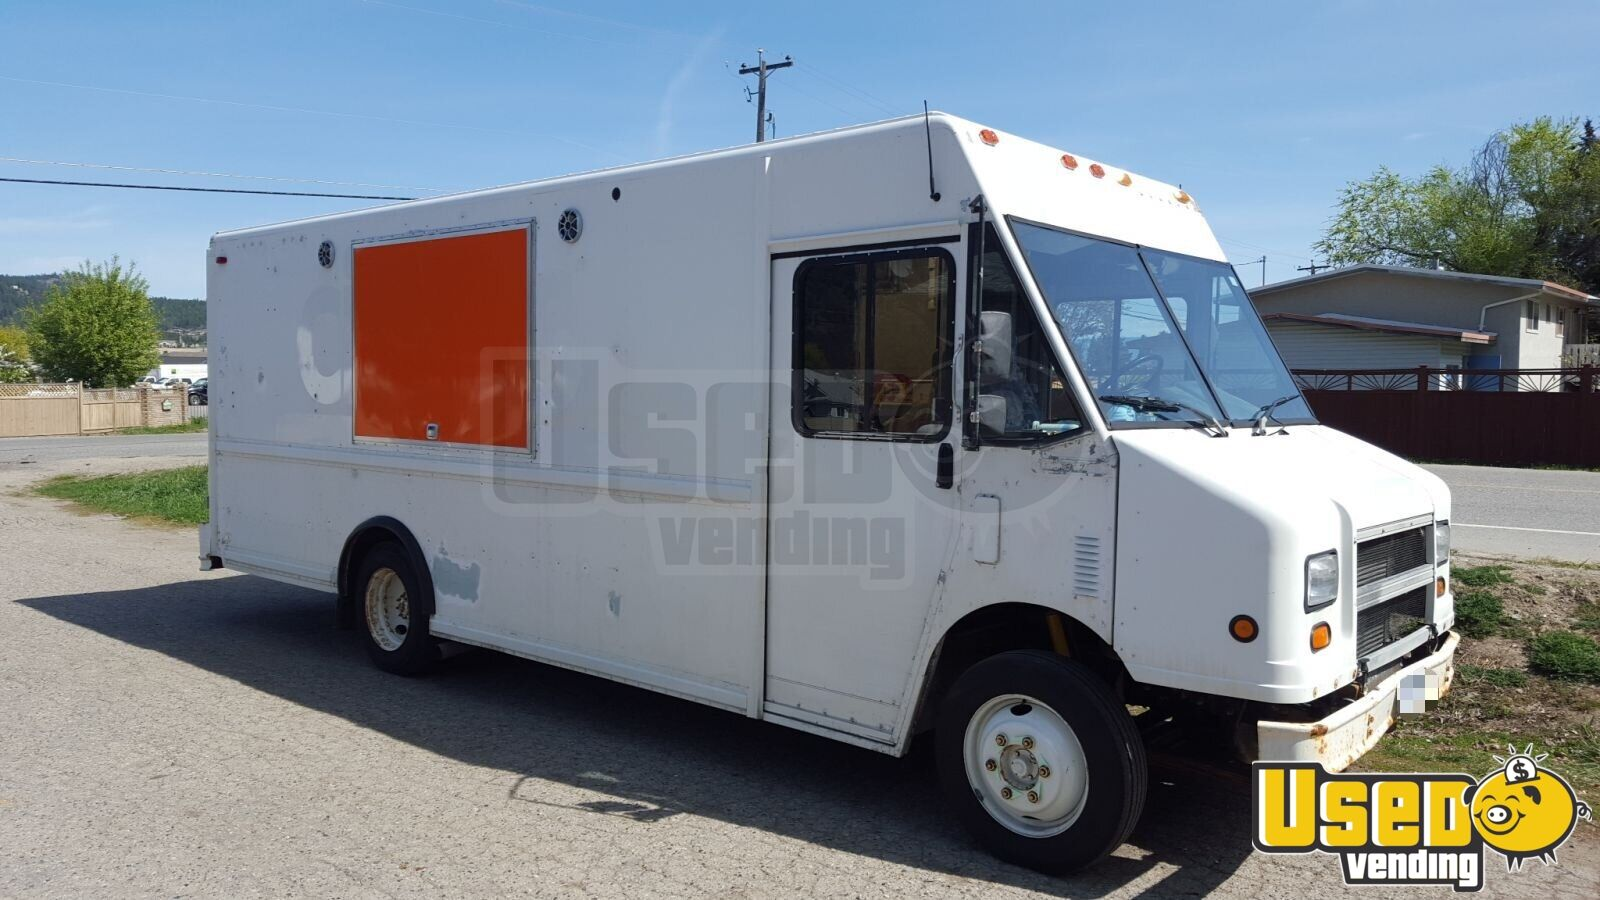 2001 Freightliner All-purpose Food Truck Stainless Steel Wall Covers British Columbia Diesel Engine for Sale - 4